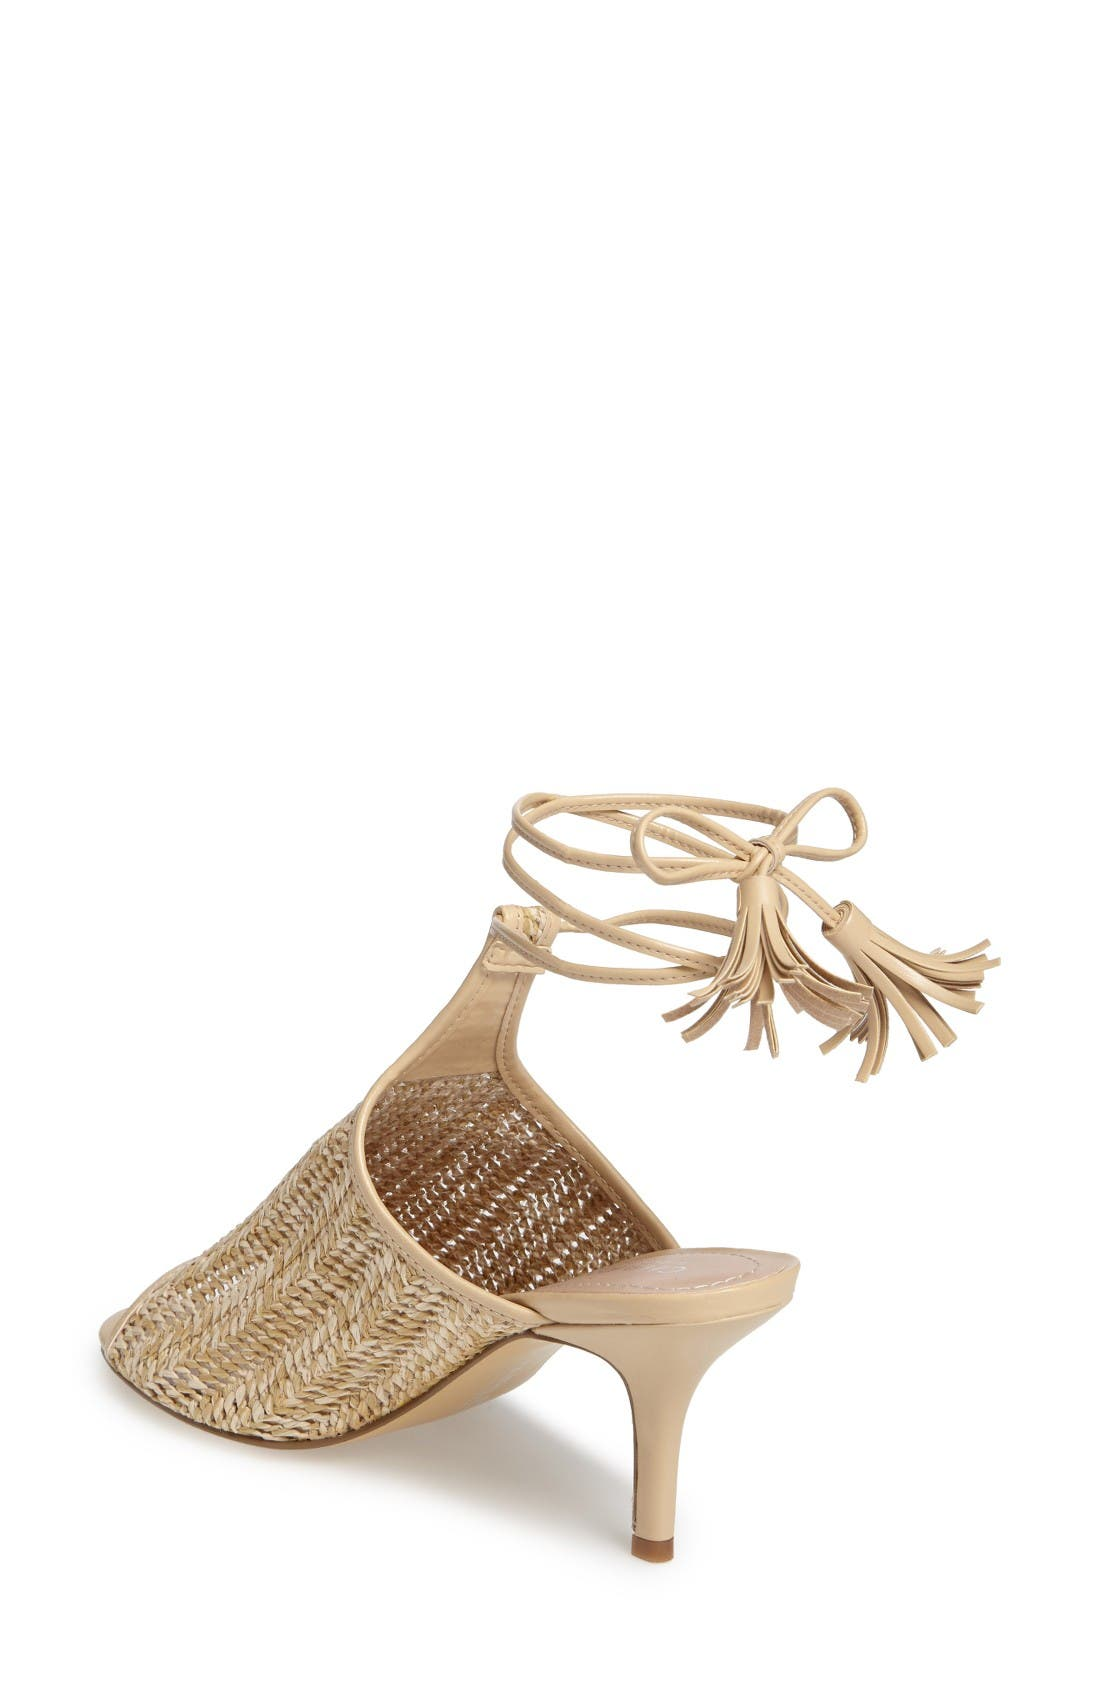 Niko Ankle Tie Sandal,                             Alternate thumbnail 2, color,                             Natural Basket Woven Fabric